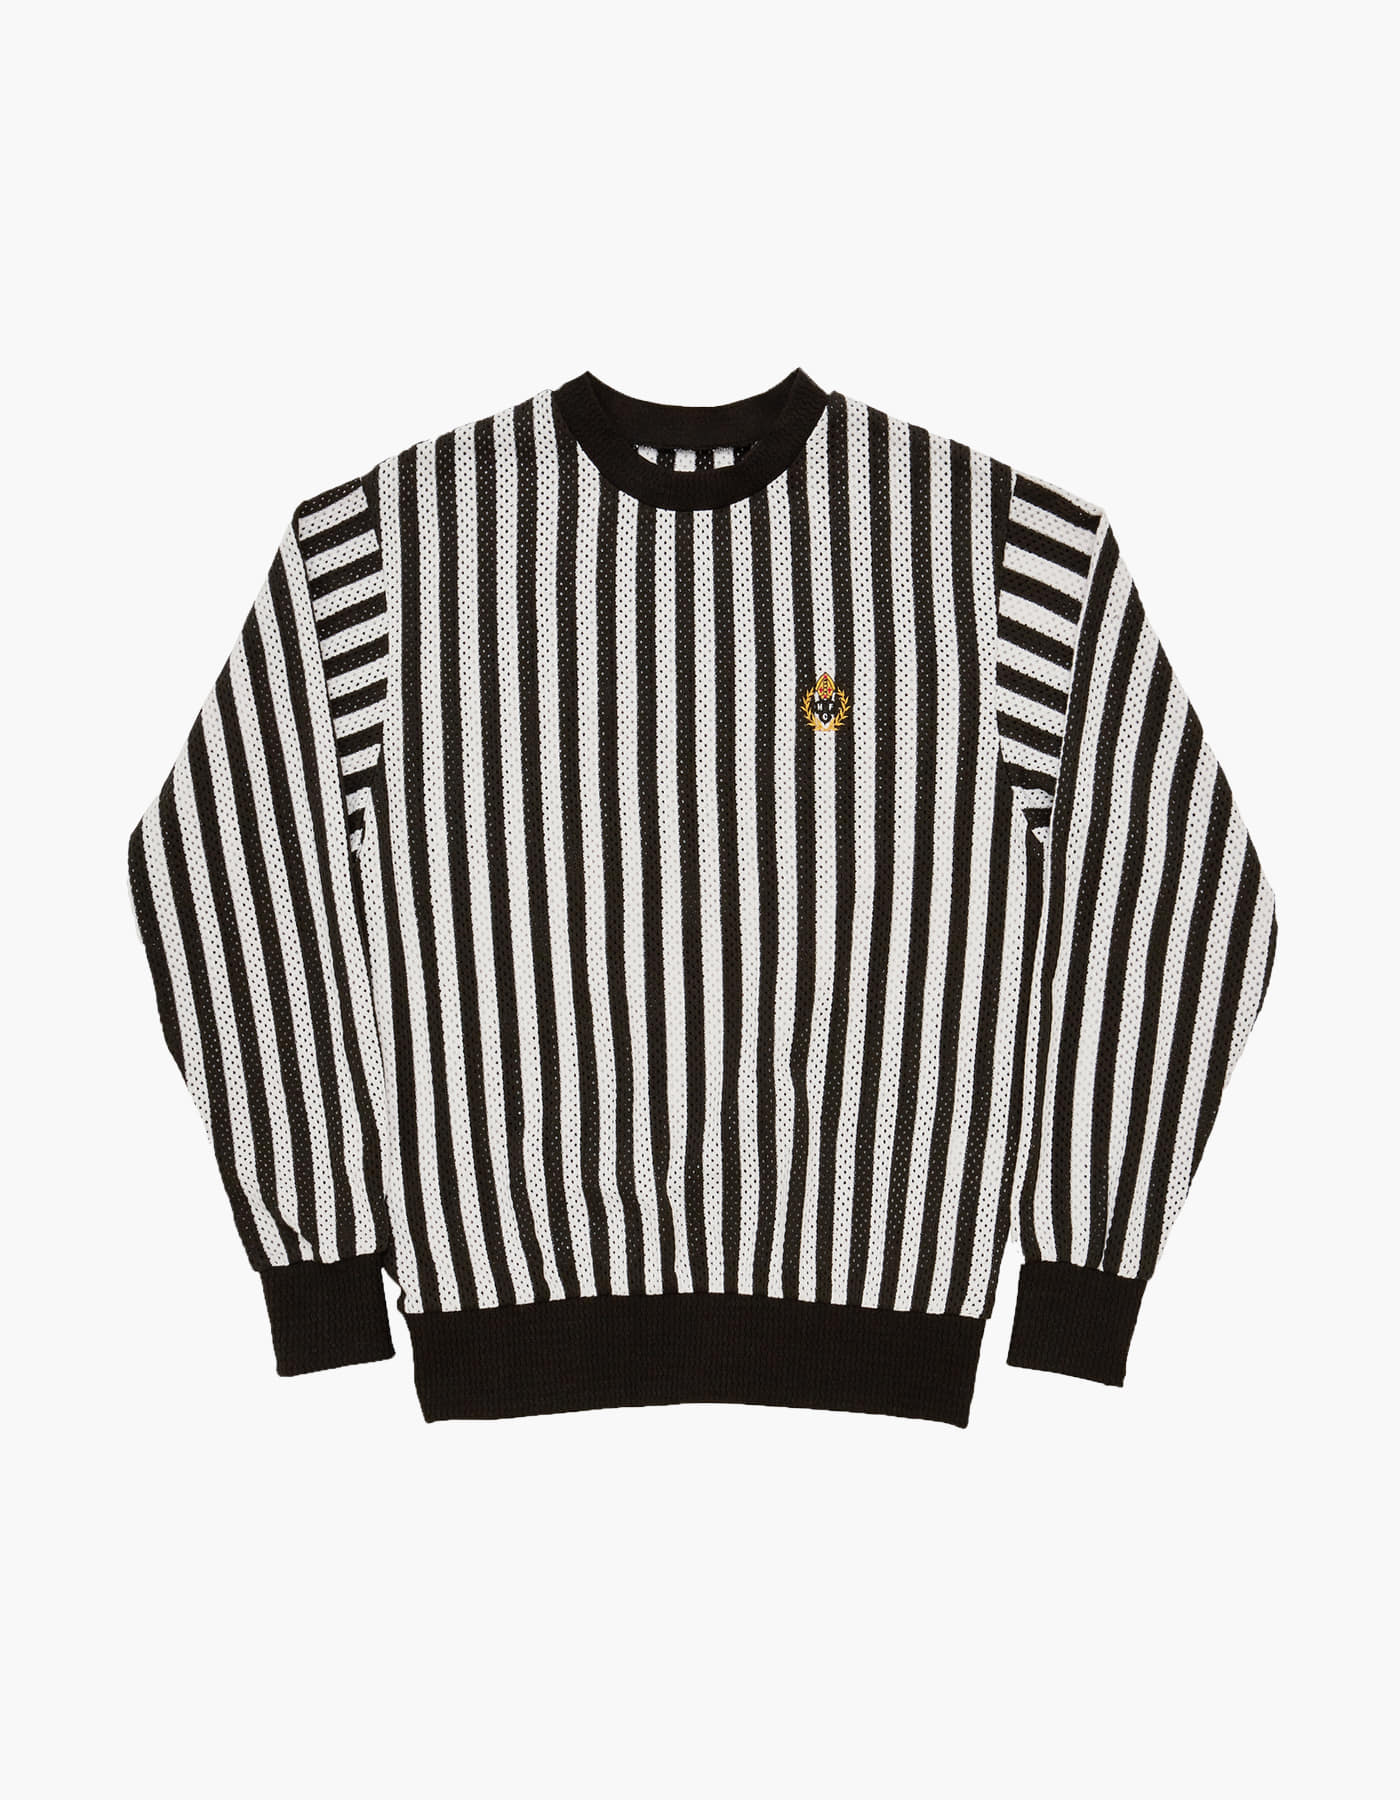 ENGLISH STRIPED MESH CREWNECK / WHITE-BLACK